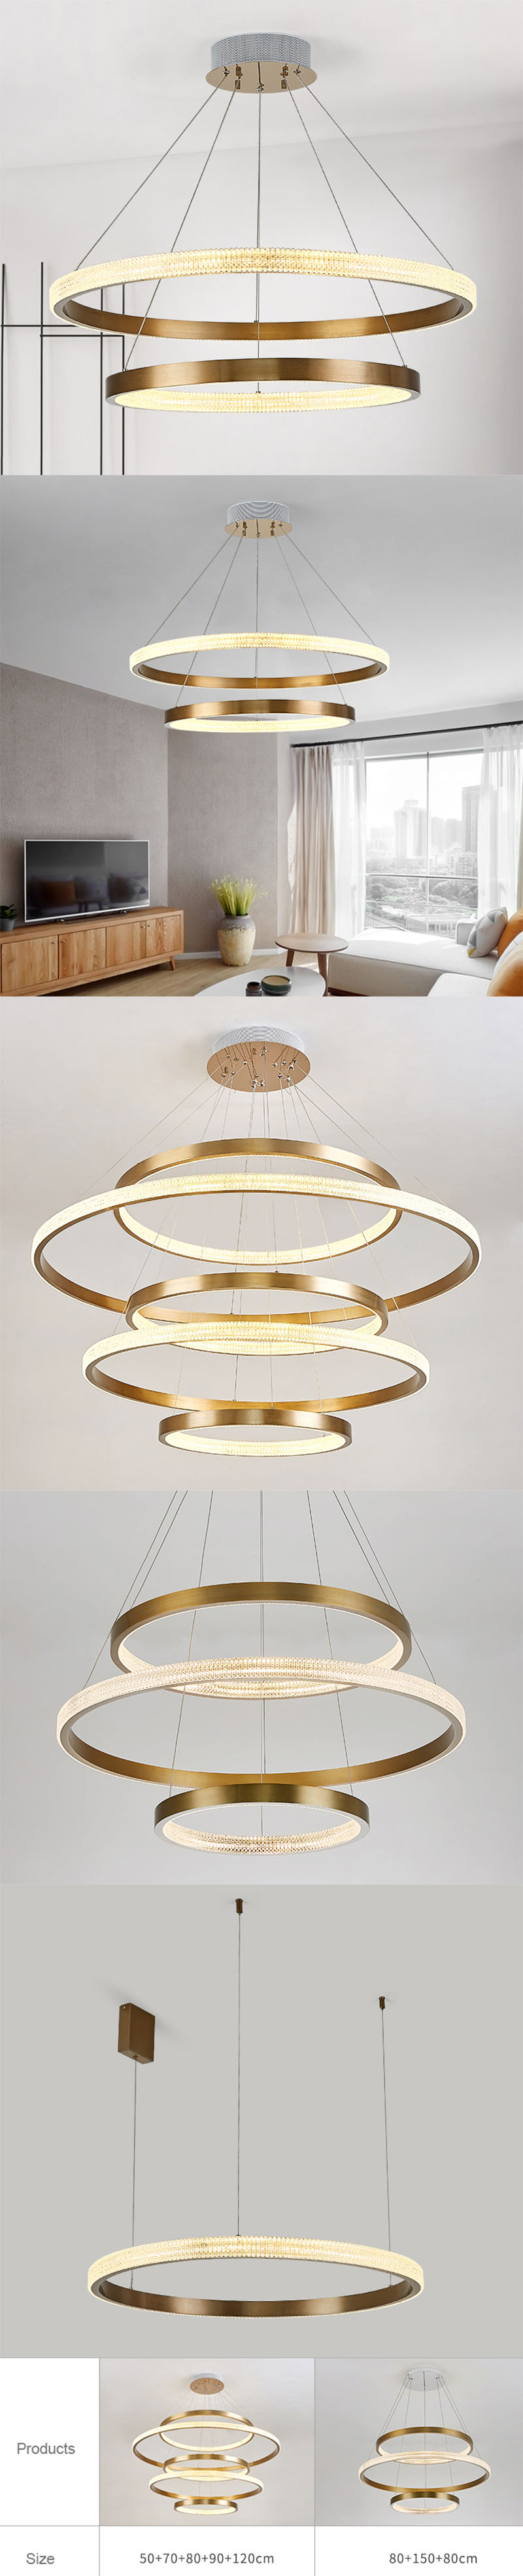 LED round acrylic circle lighting for living room and dining room